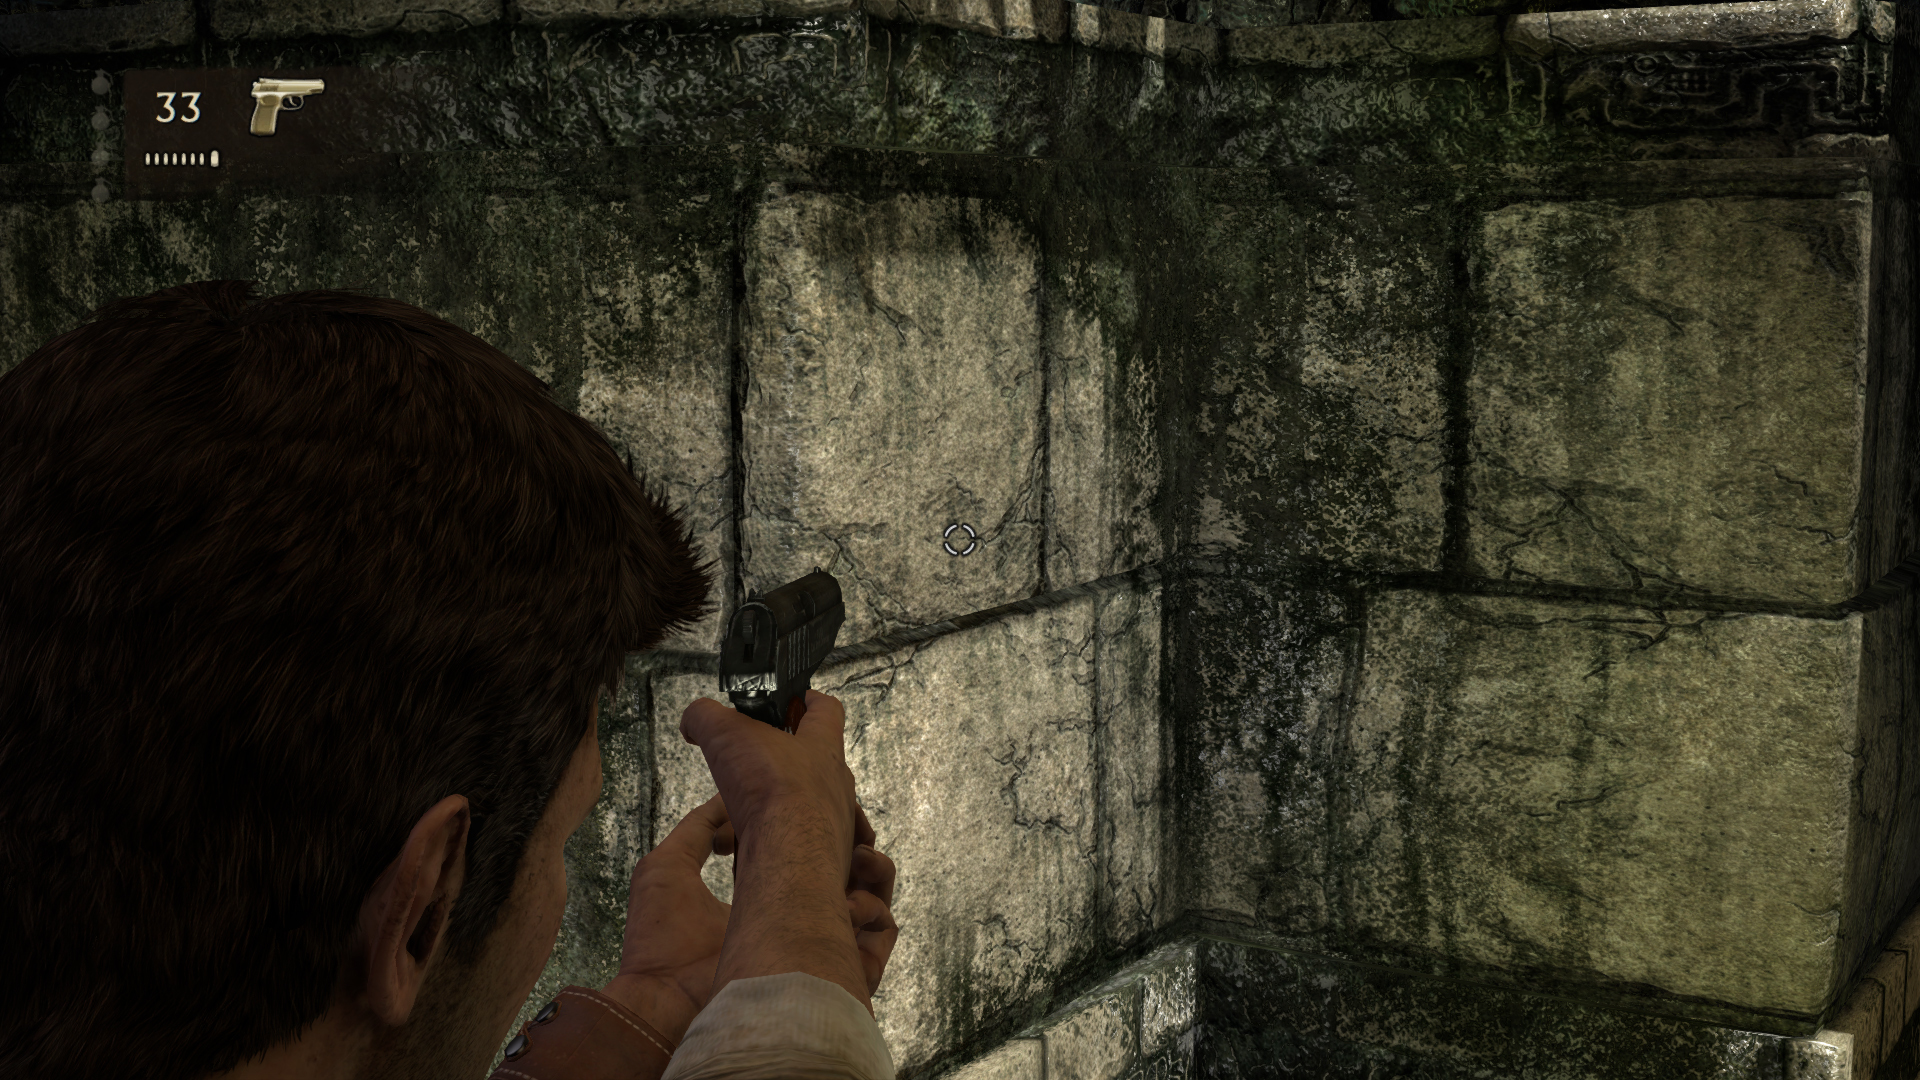 uncharted_thenathandrfwsm5.jpg